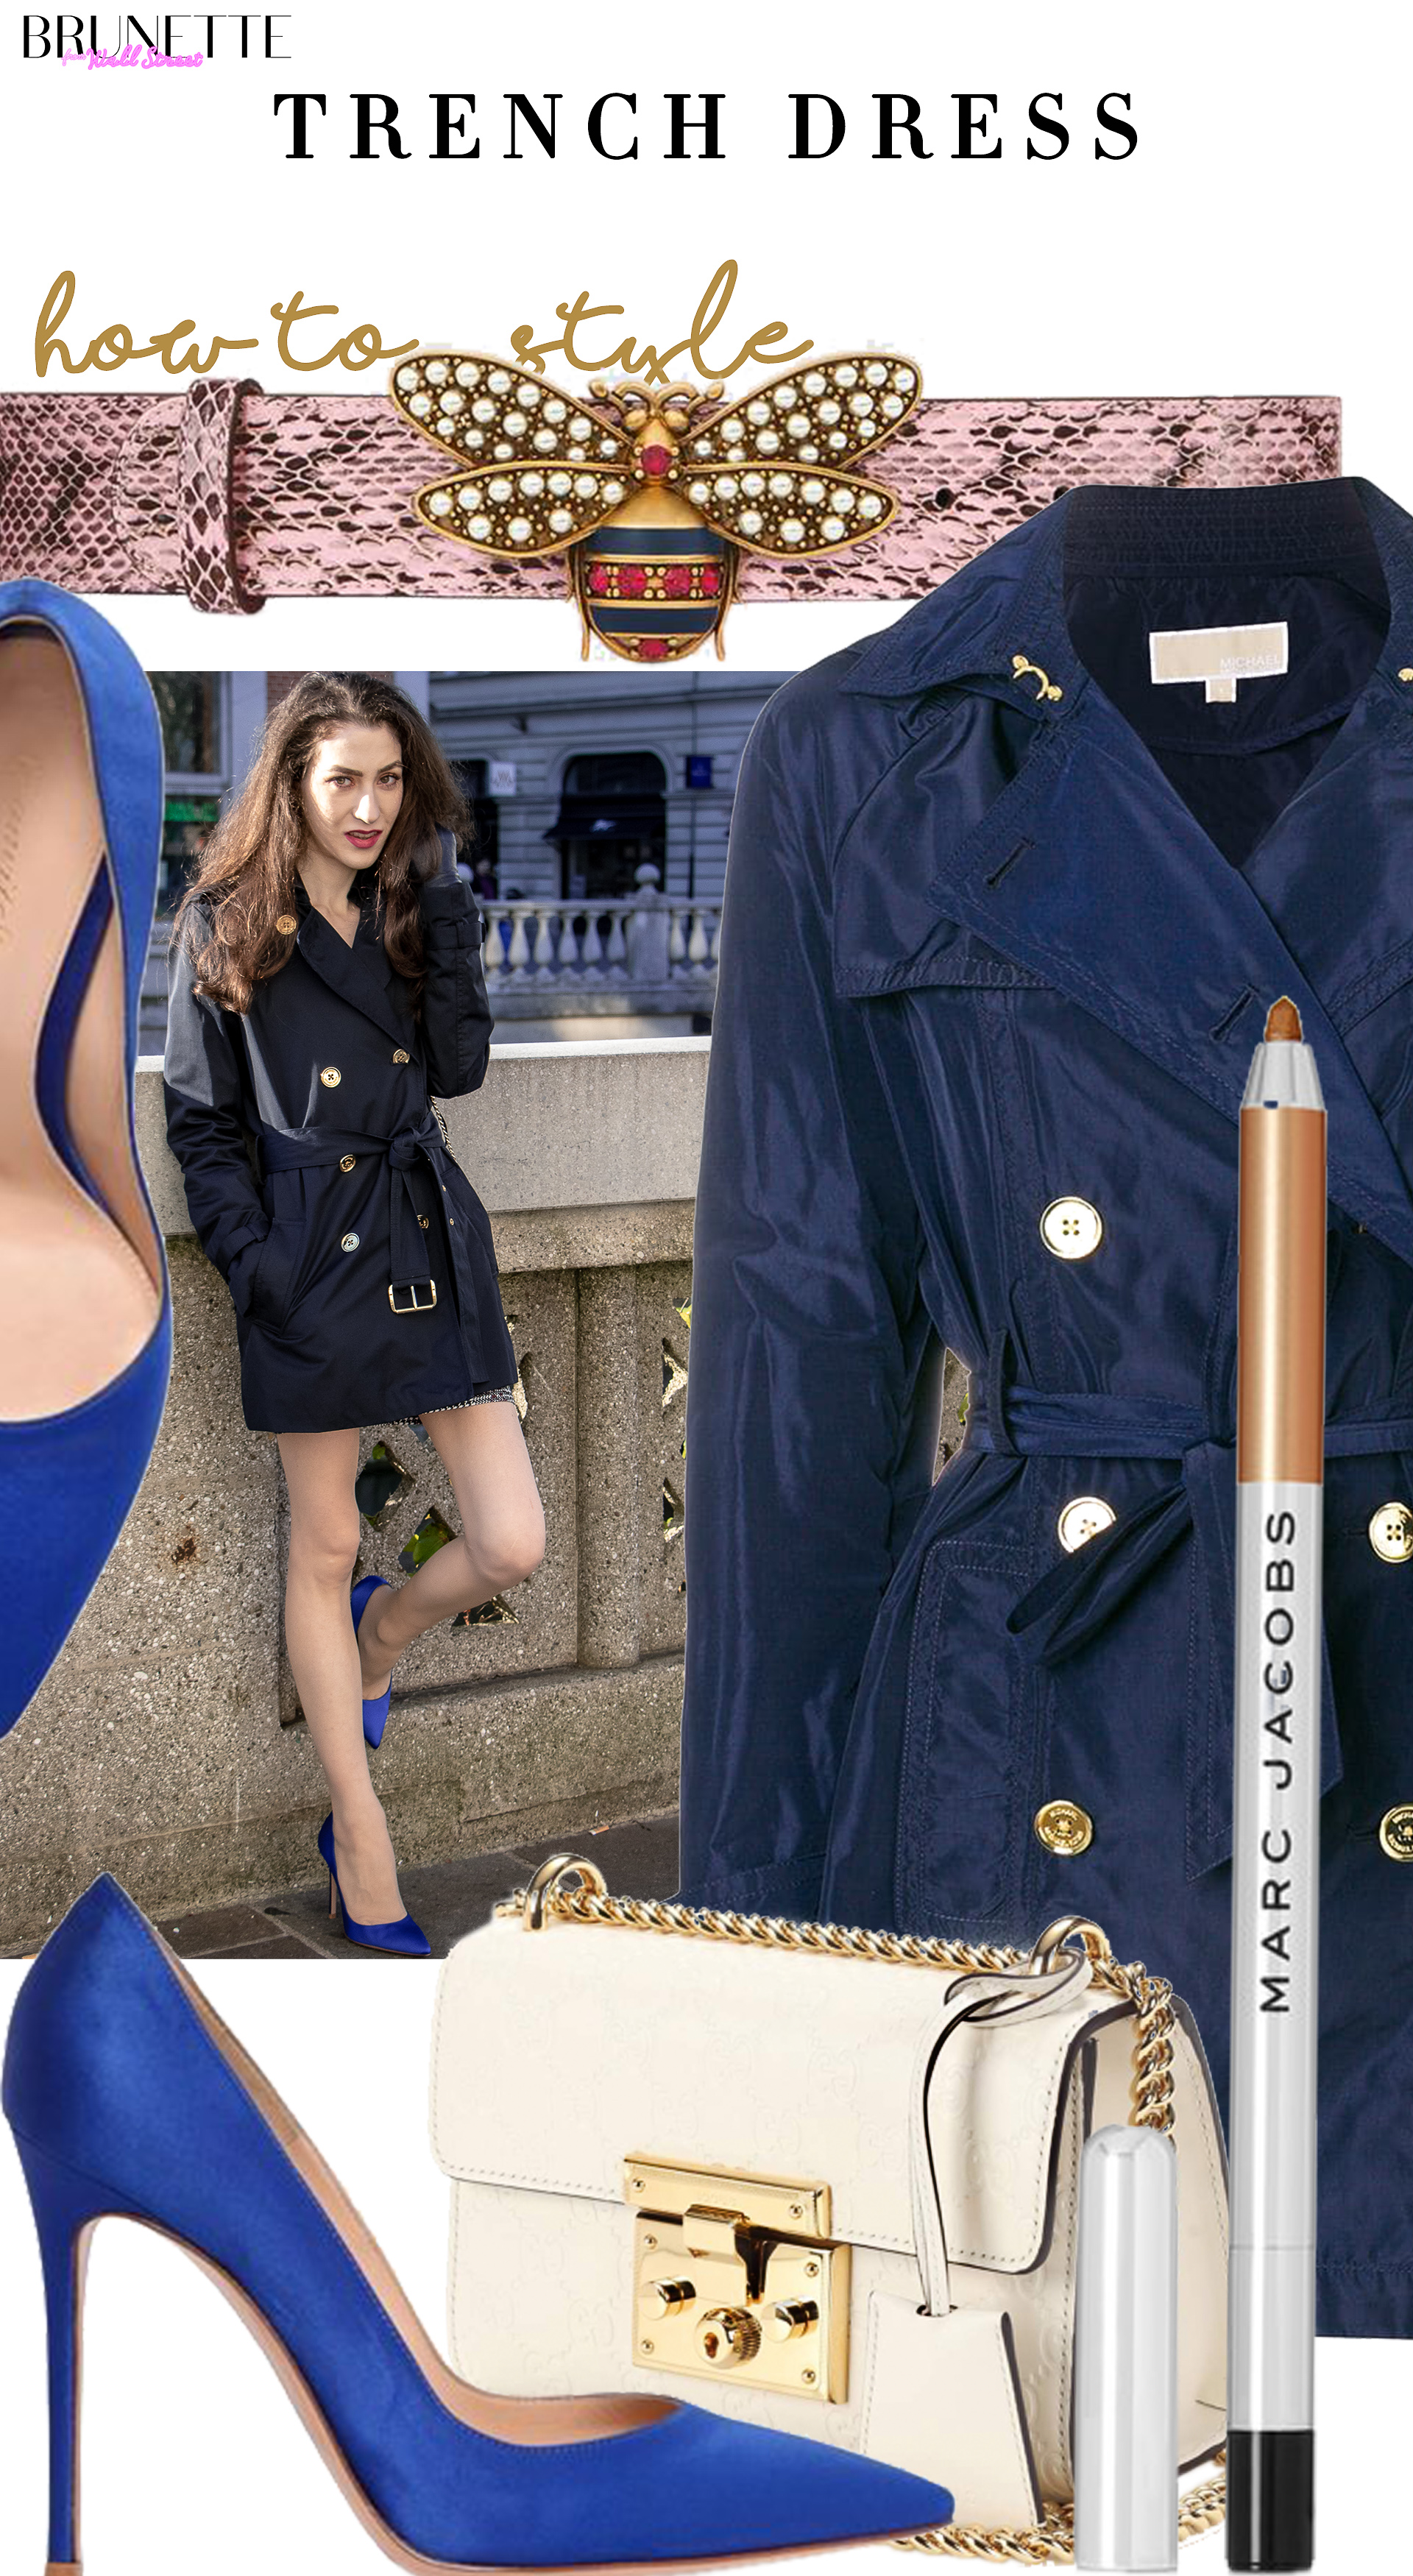 Brunette from Wall Street how to style trench dress for wedding